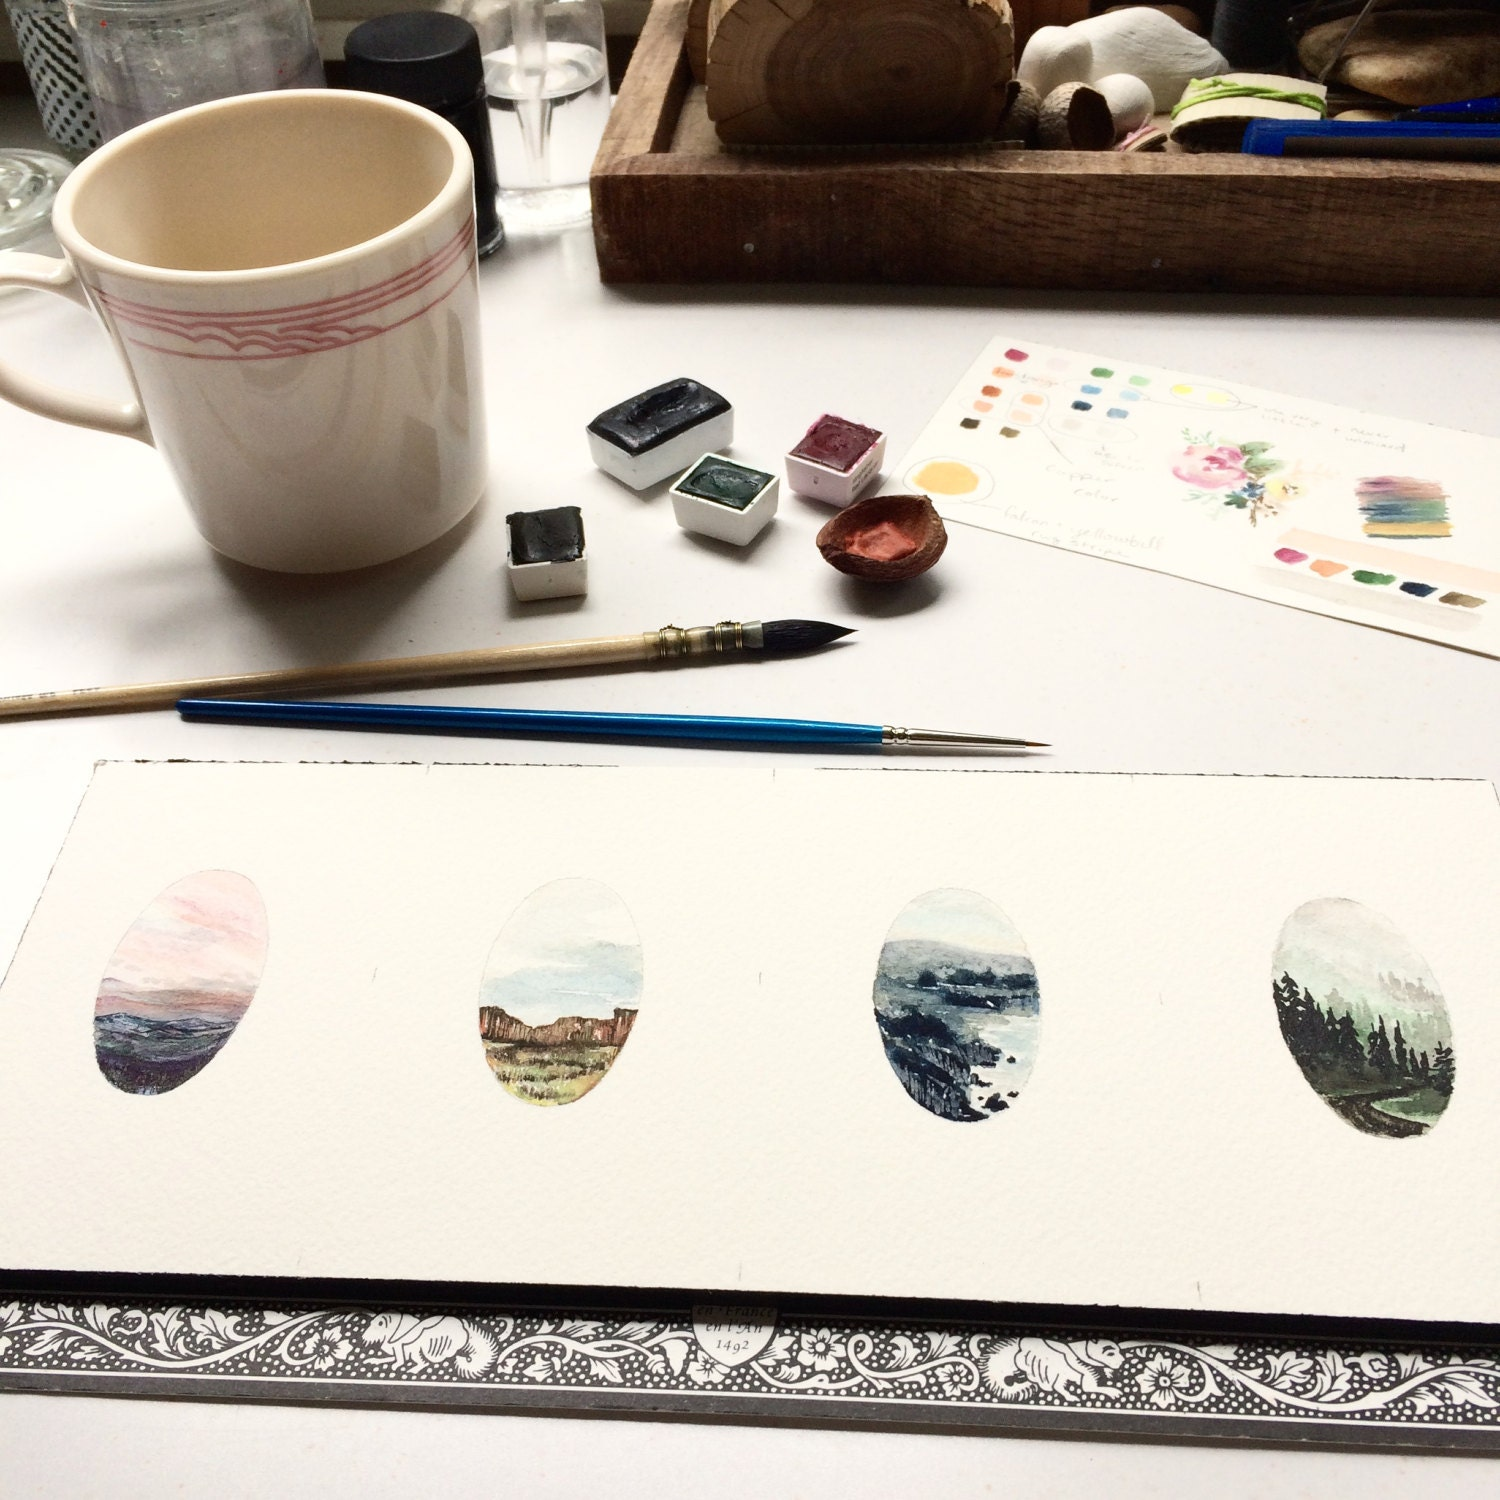 Four tiny landscapes in a row